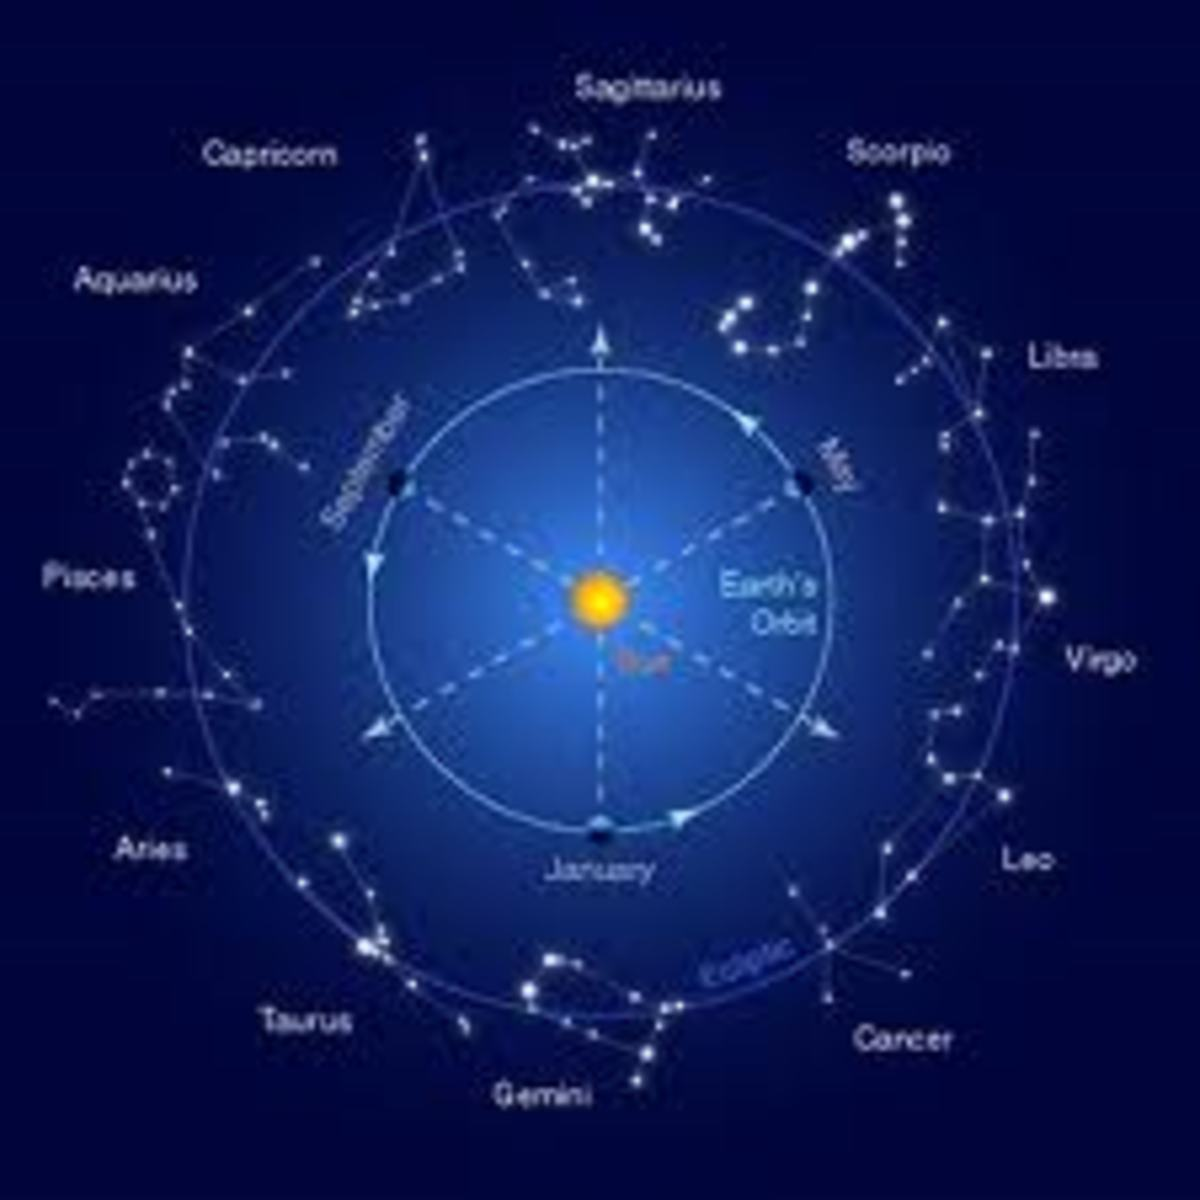 In these religious writings, we live on this planet that we call earth, with our solar system and other planets in the constellation of the zodiac which is part of the Milky Way galaxy, and we are in search of our spiritual self.